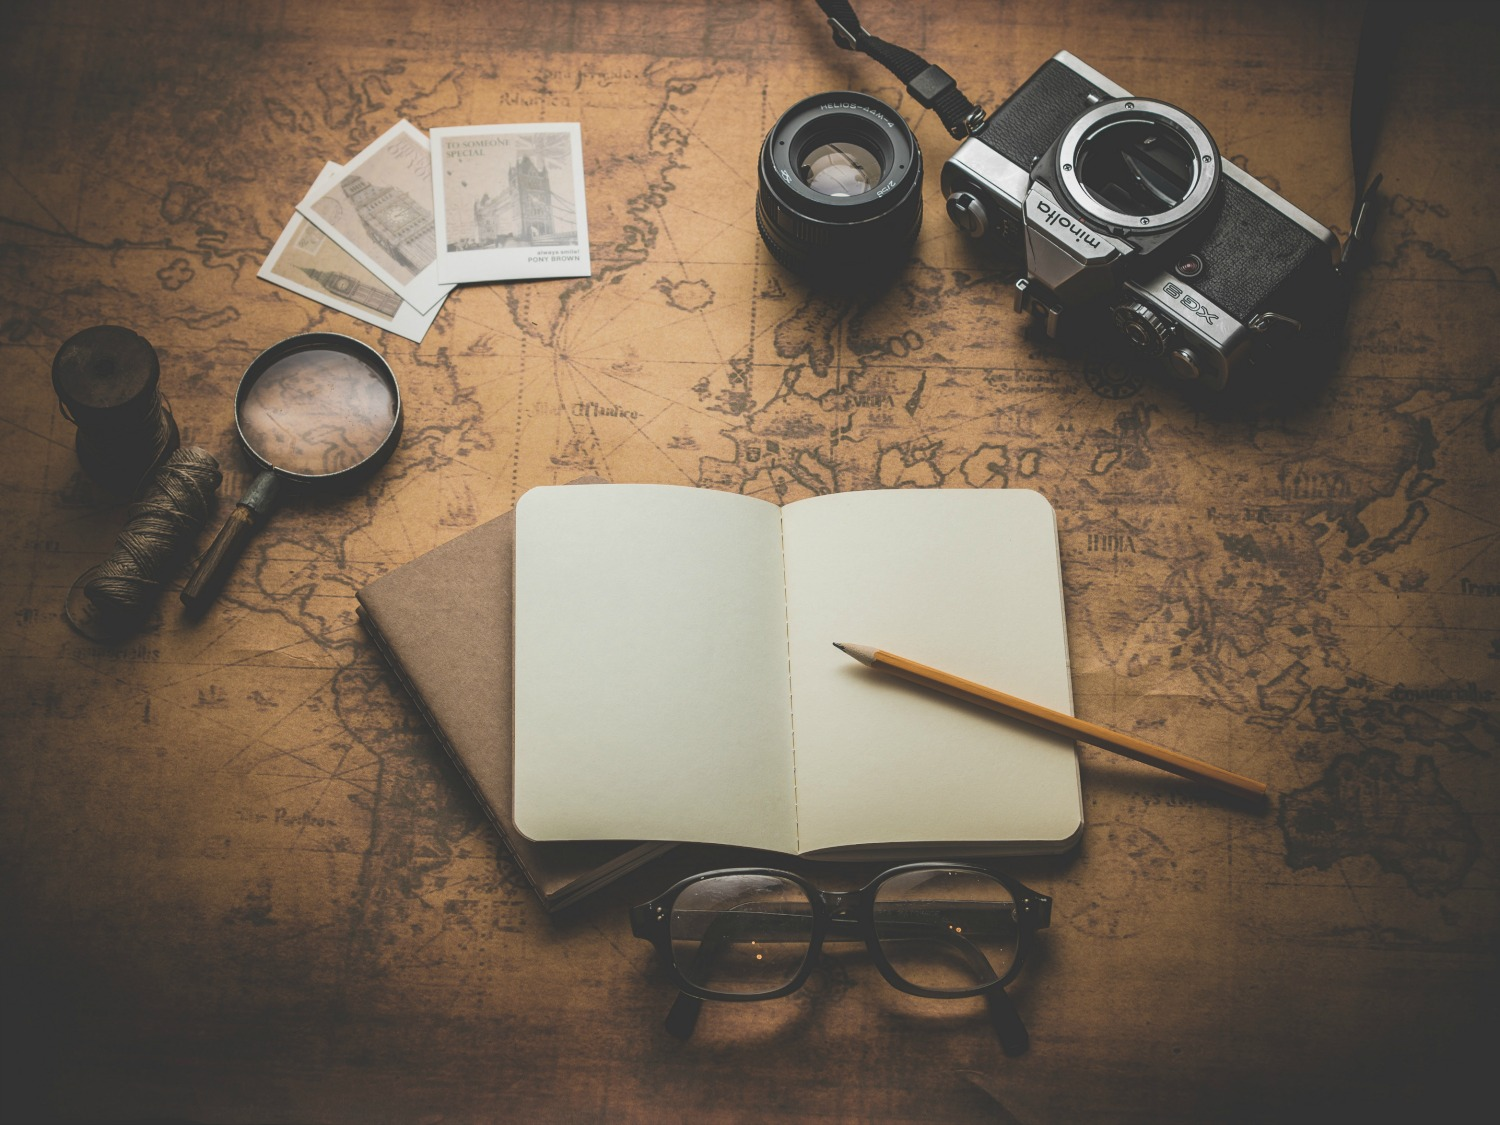 A map is spread out with vintage camera and other old looking travel paraphernalia. An open journal and pencil are the focus.